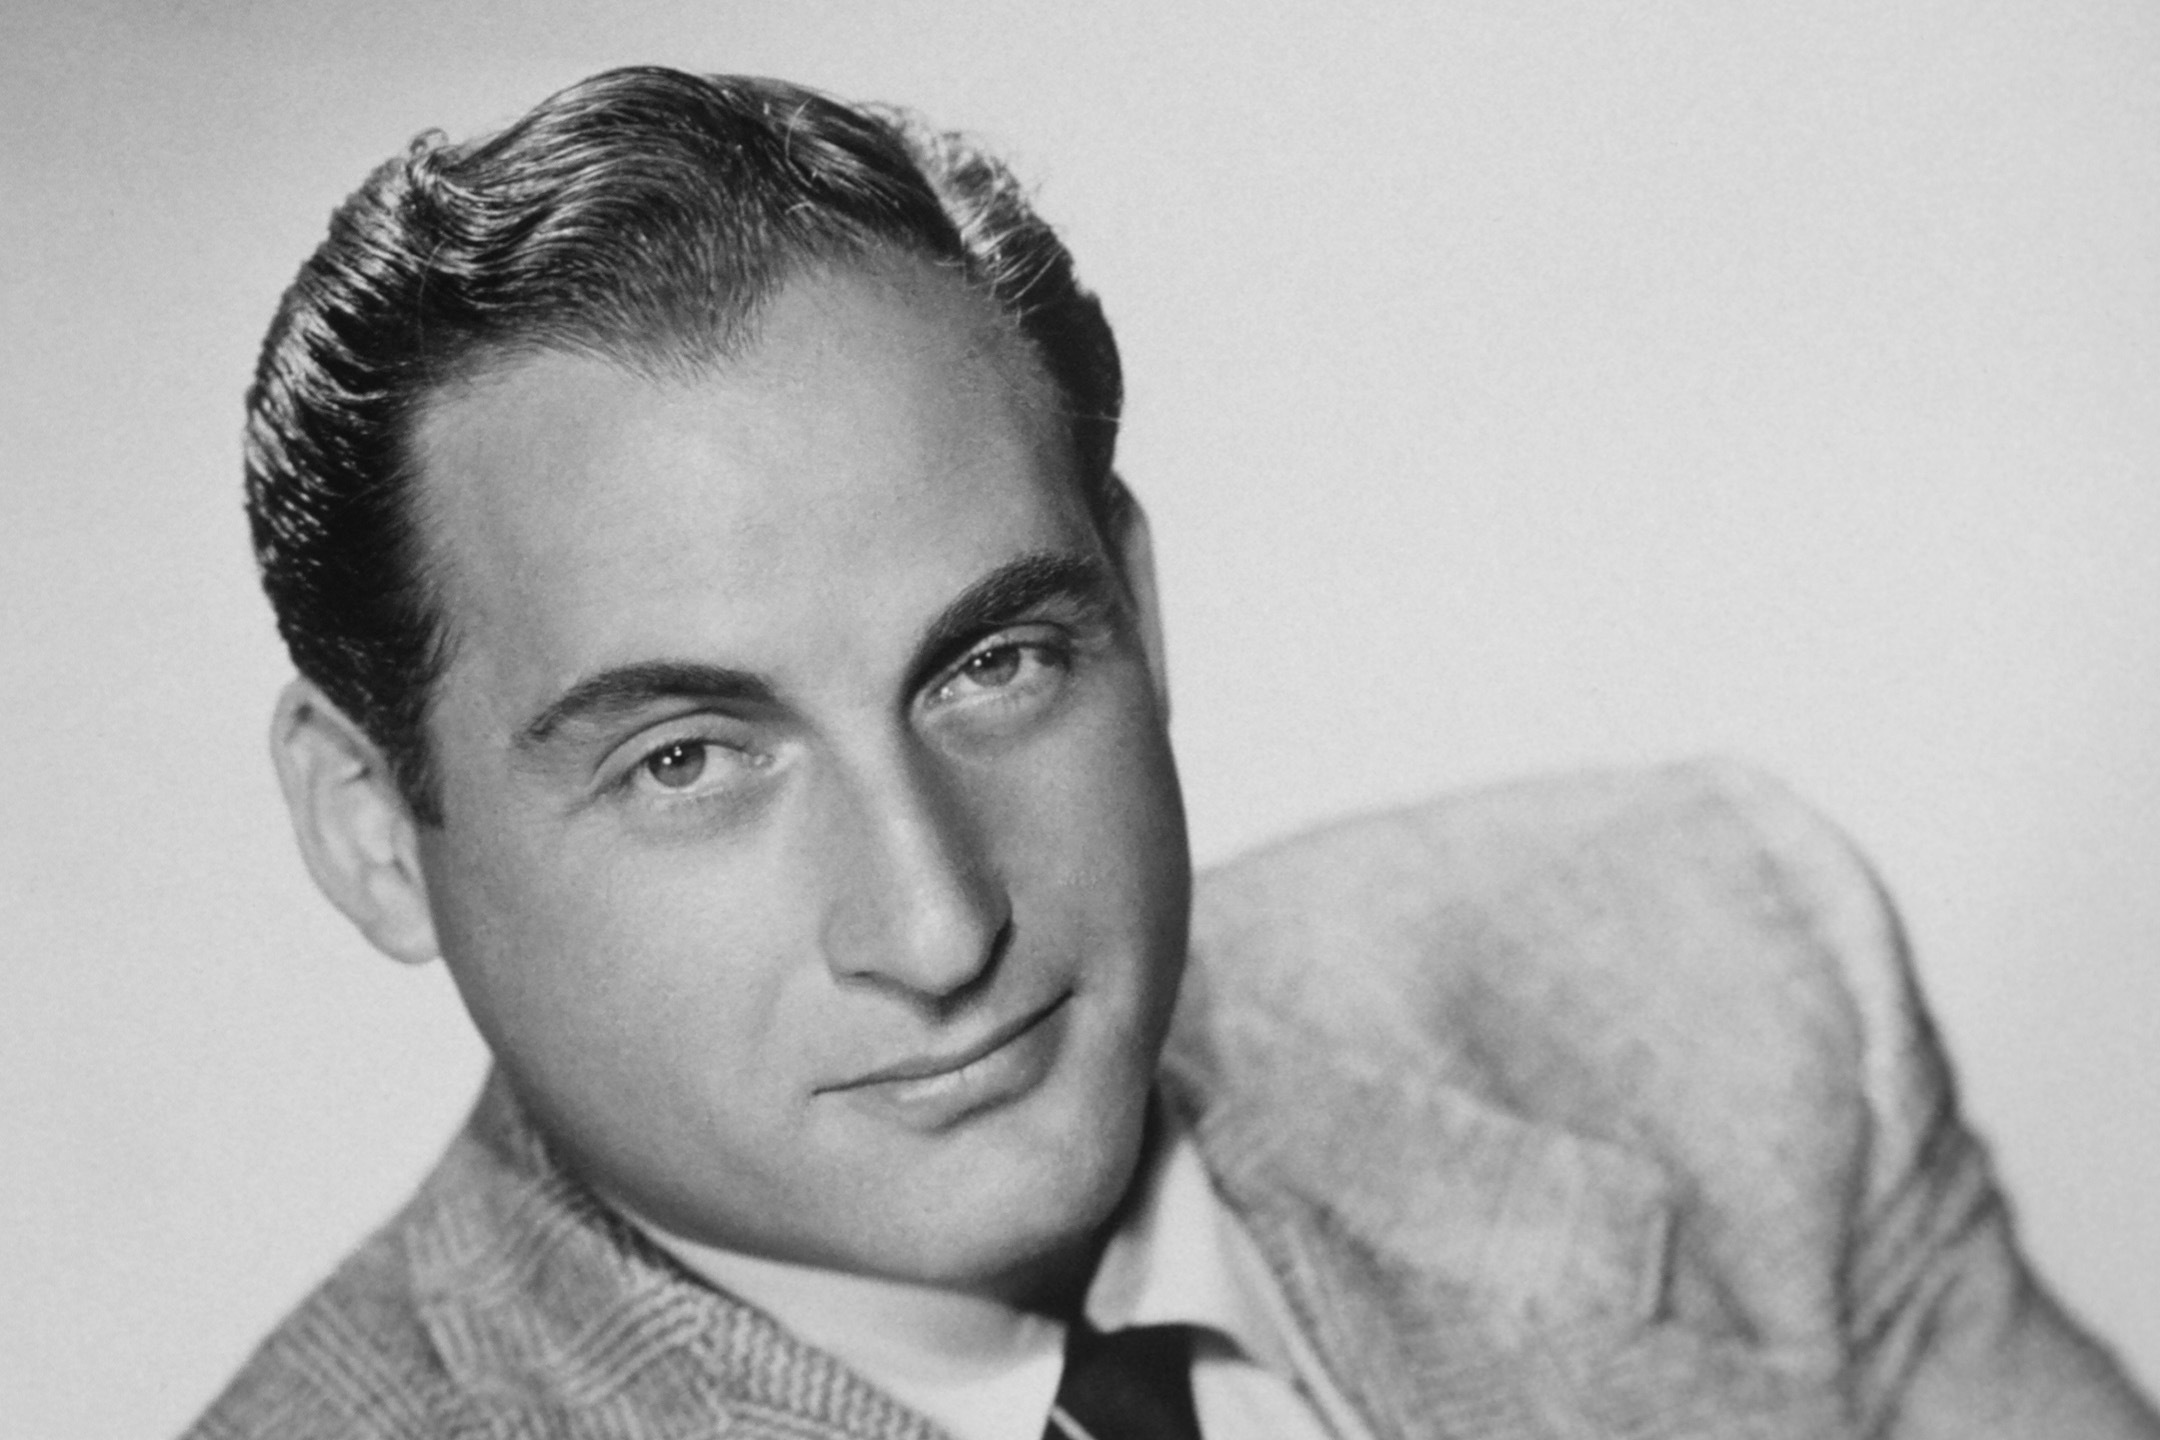 sidcaesar-13 - Actor and comedian Sid Caesar was well-known for <em>Your Show of Shows</em> and other comedic roles on television.